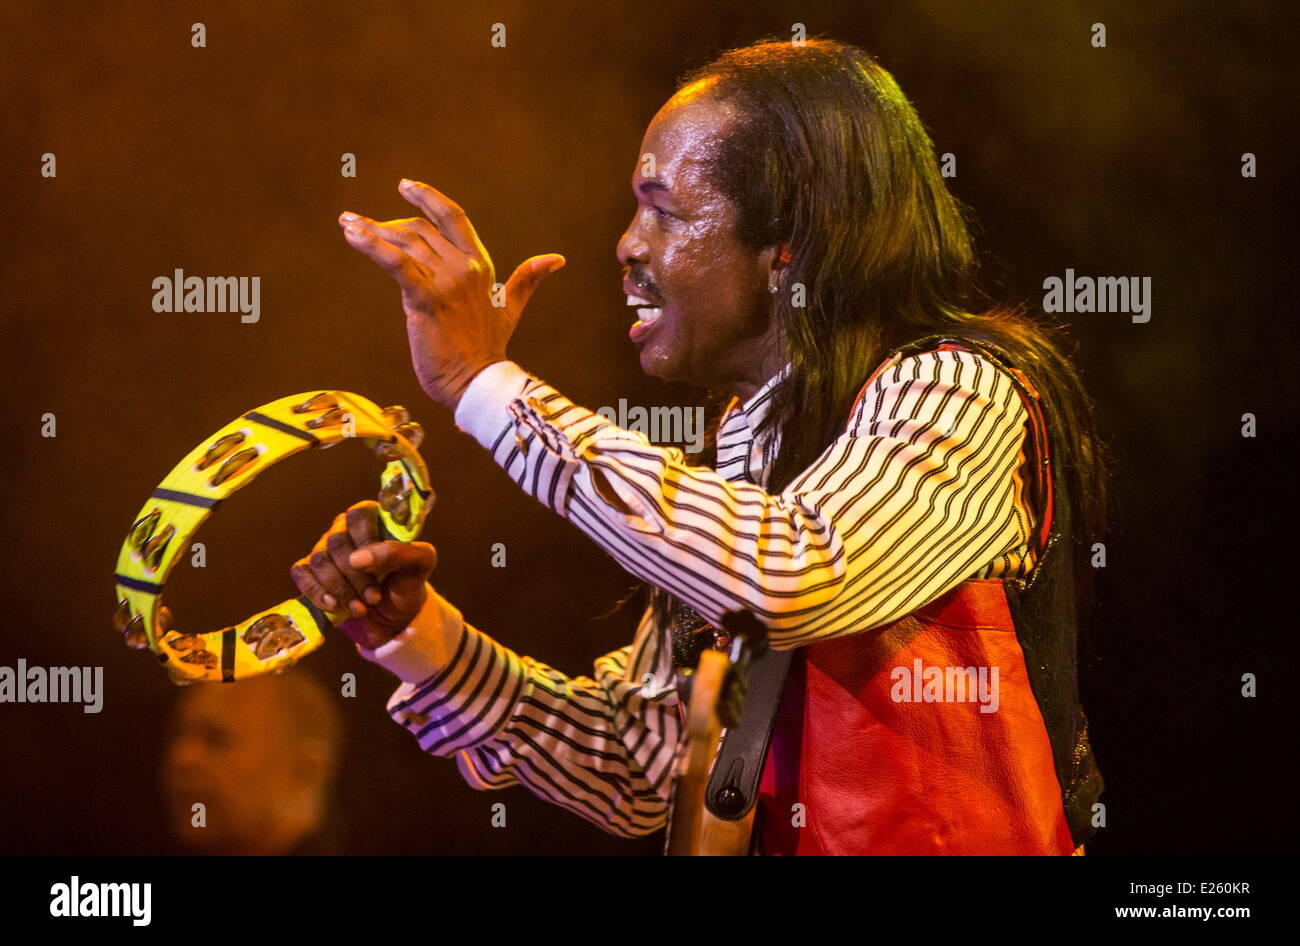 Earth, Wind & Fire perform live at the Royal Albert Hall  Featuring: Verdine White Where: London, United Kingdom - Stock Image